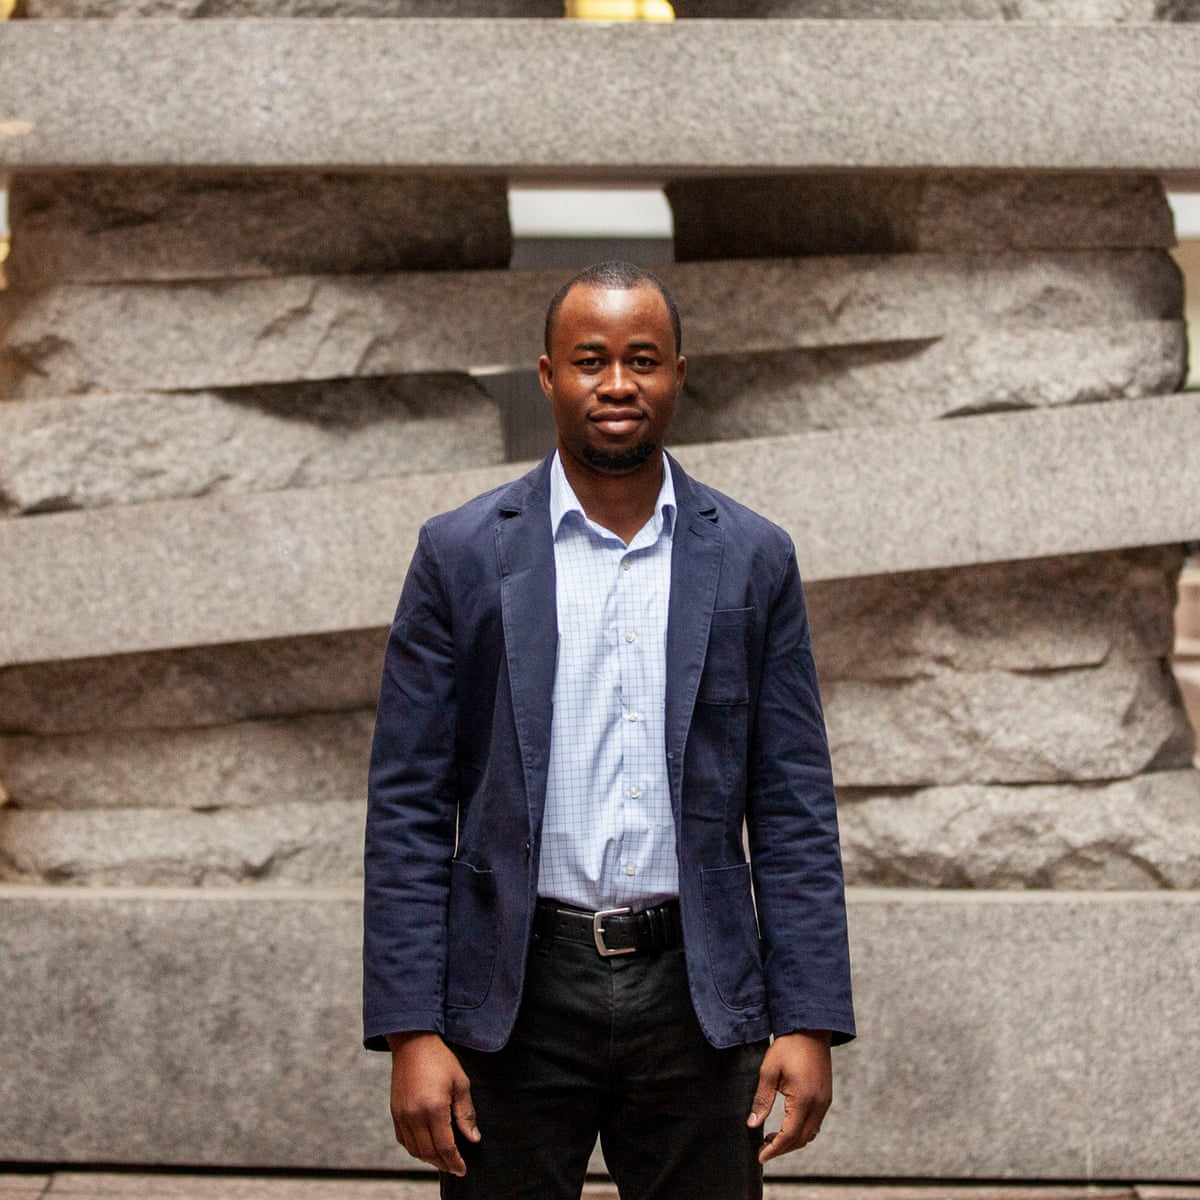 Why Jay?': Chigozie Obioma on the haunting death that inspired his novel |  Books | The Guardian